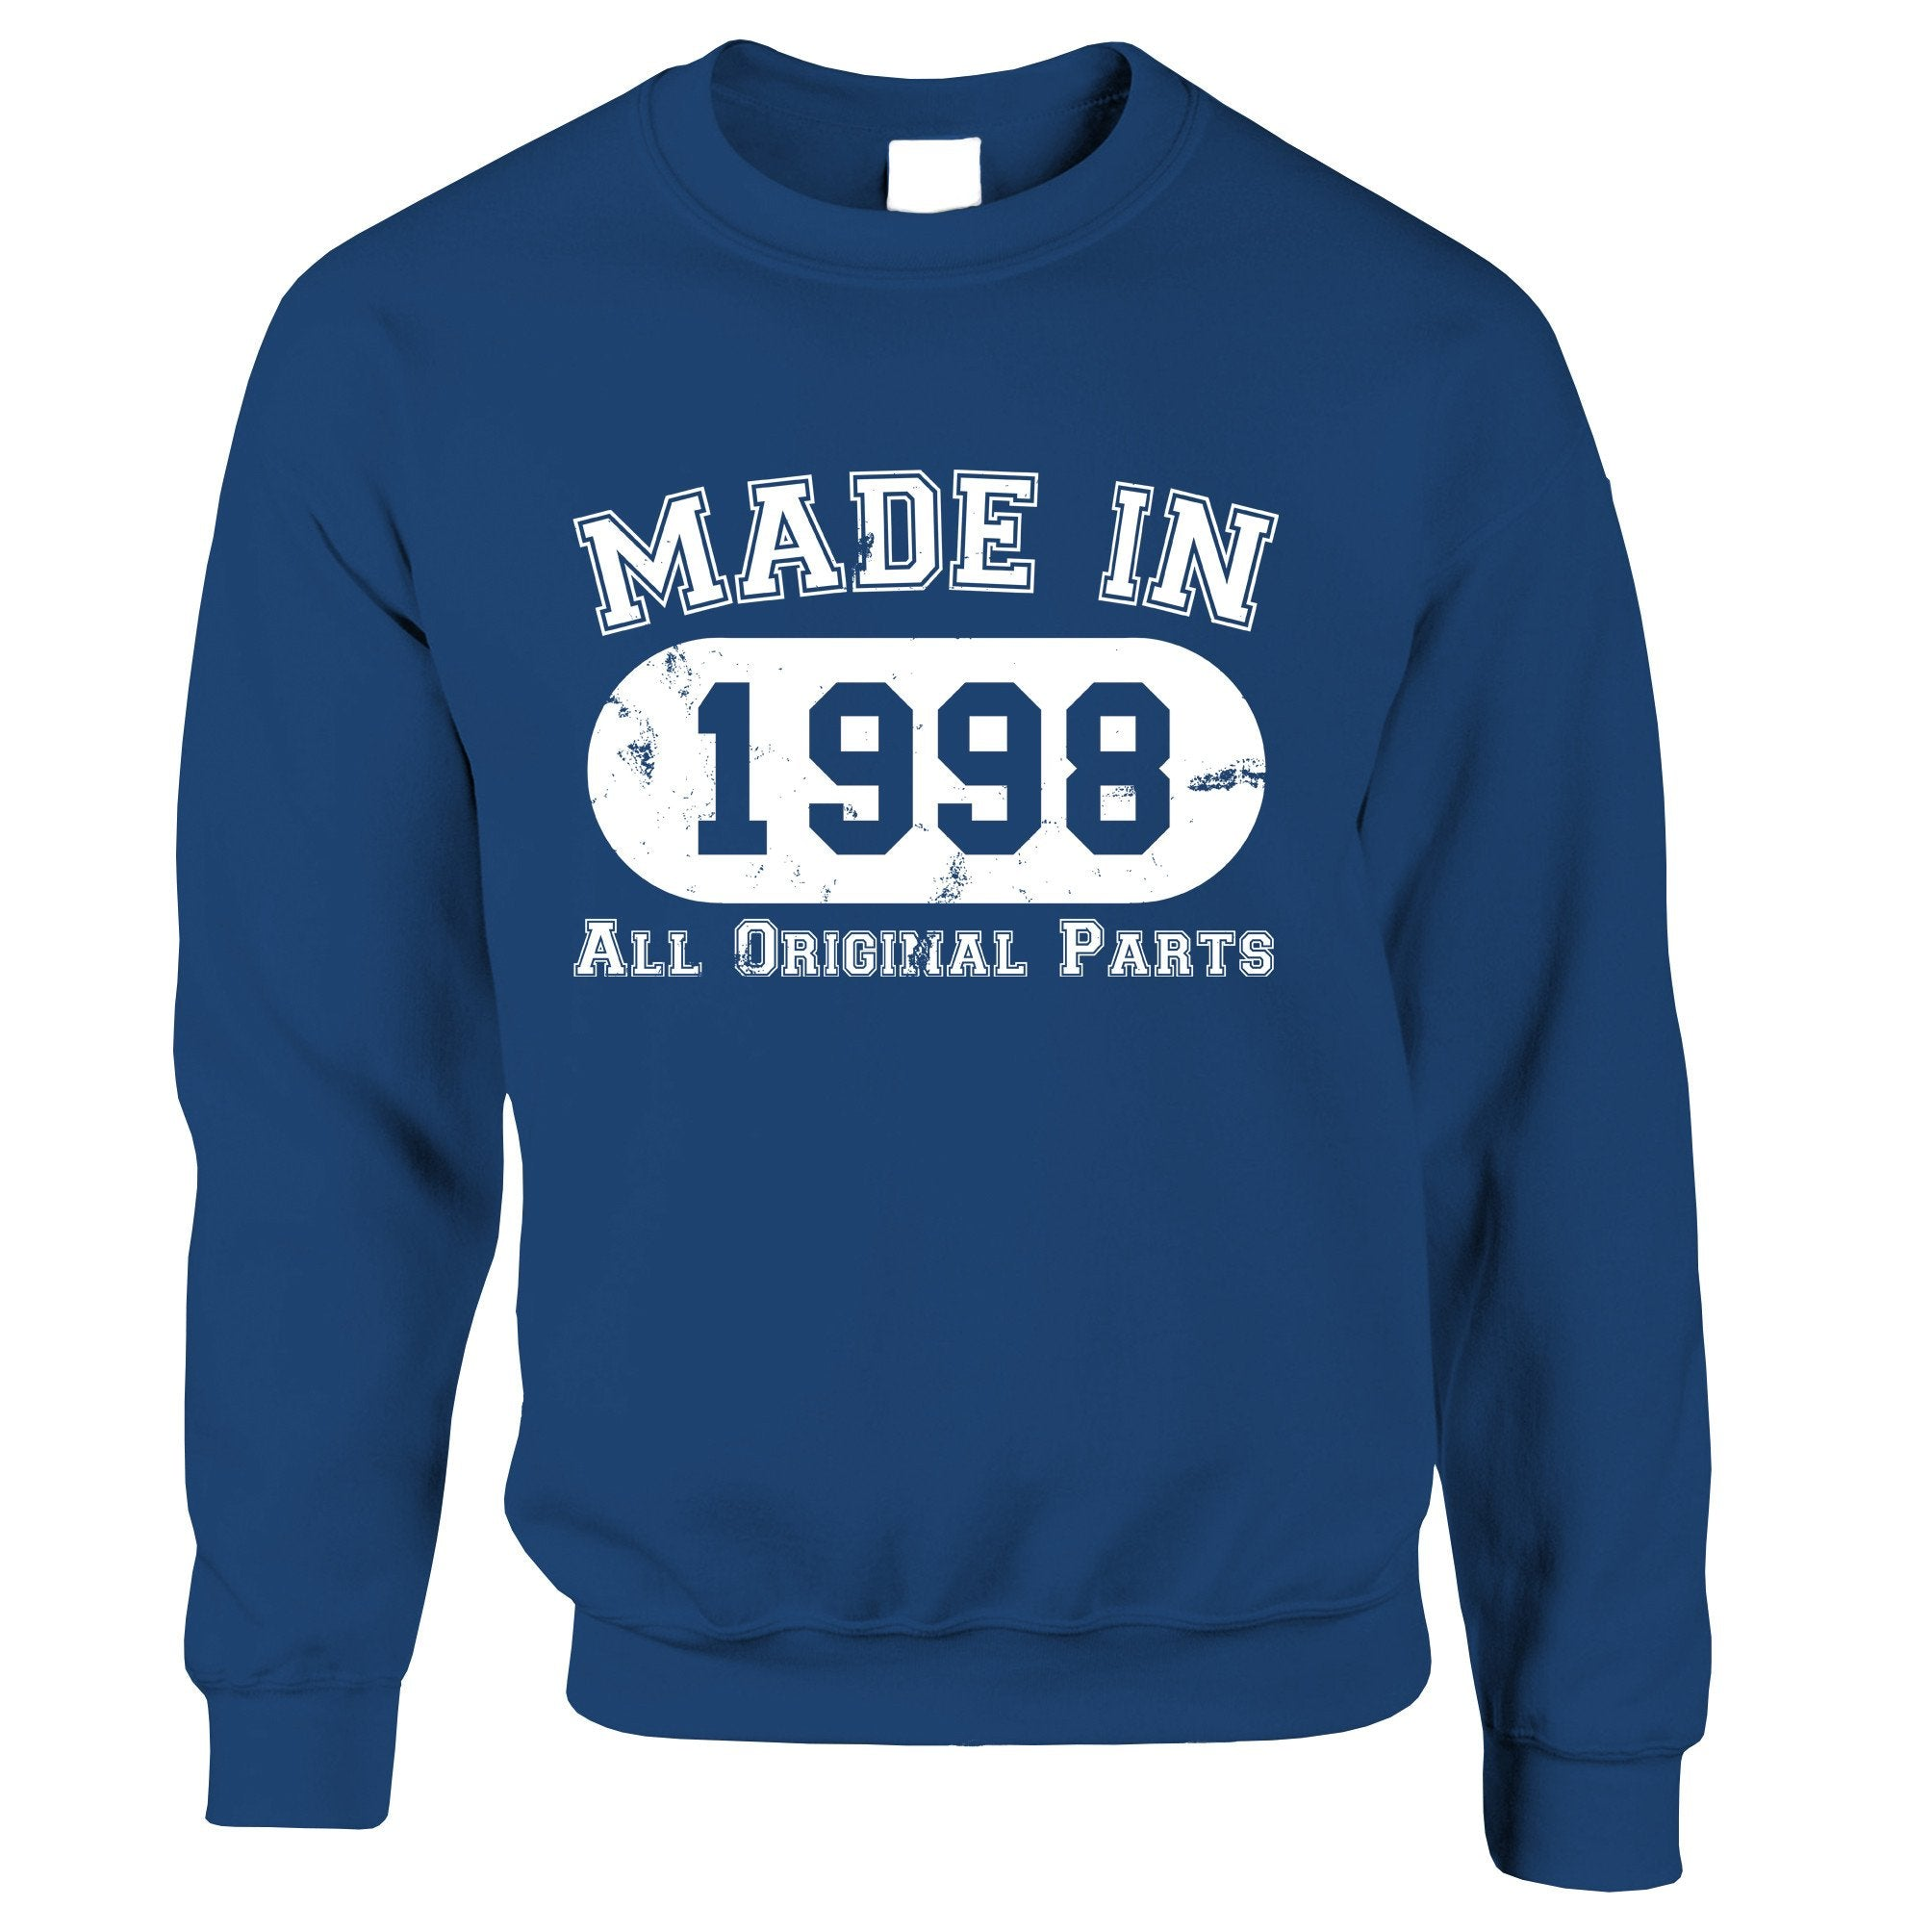 Made in 1998 All Original Parts Sweatshirt Jumper [Distressed]